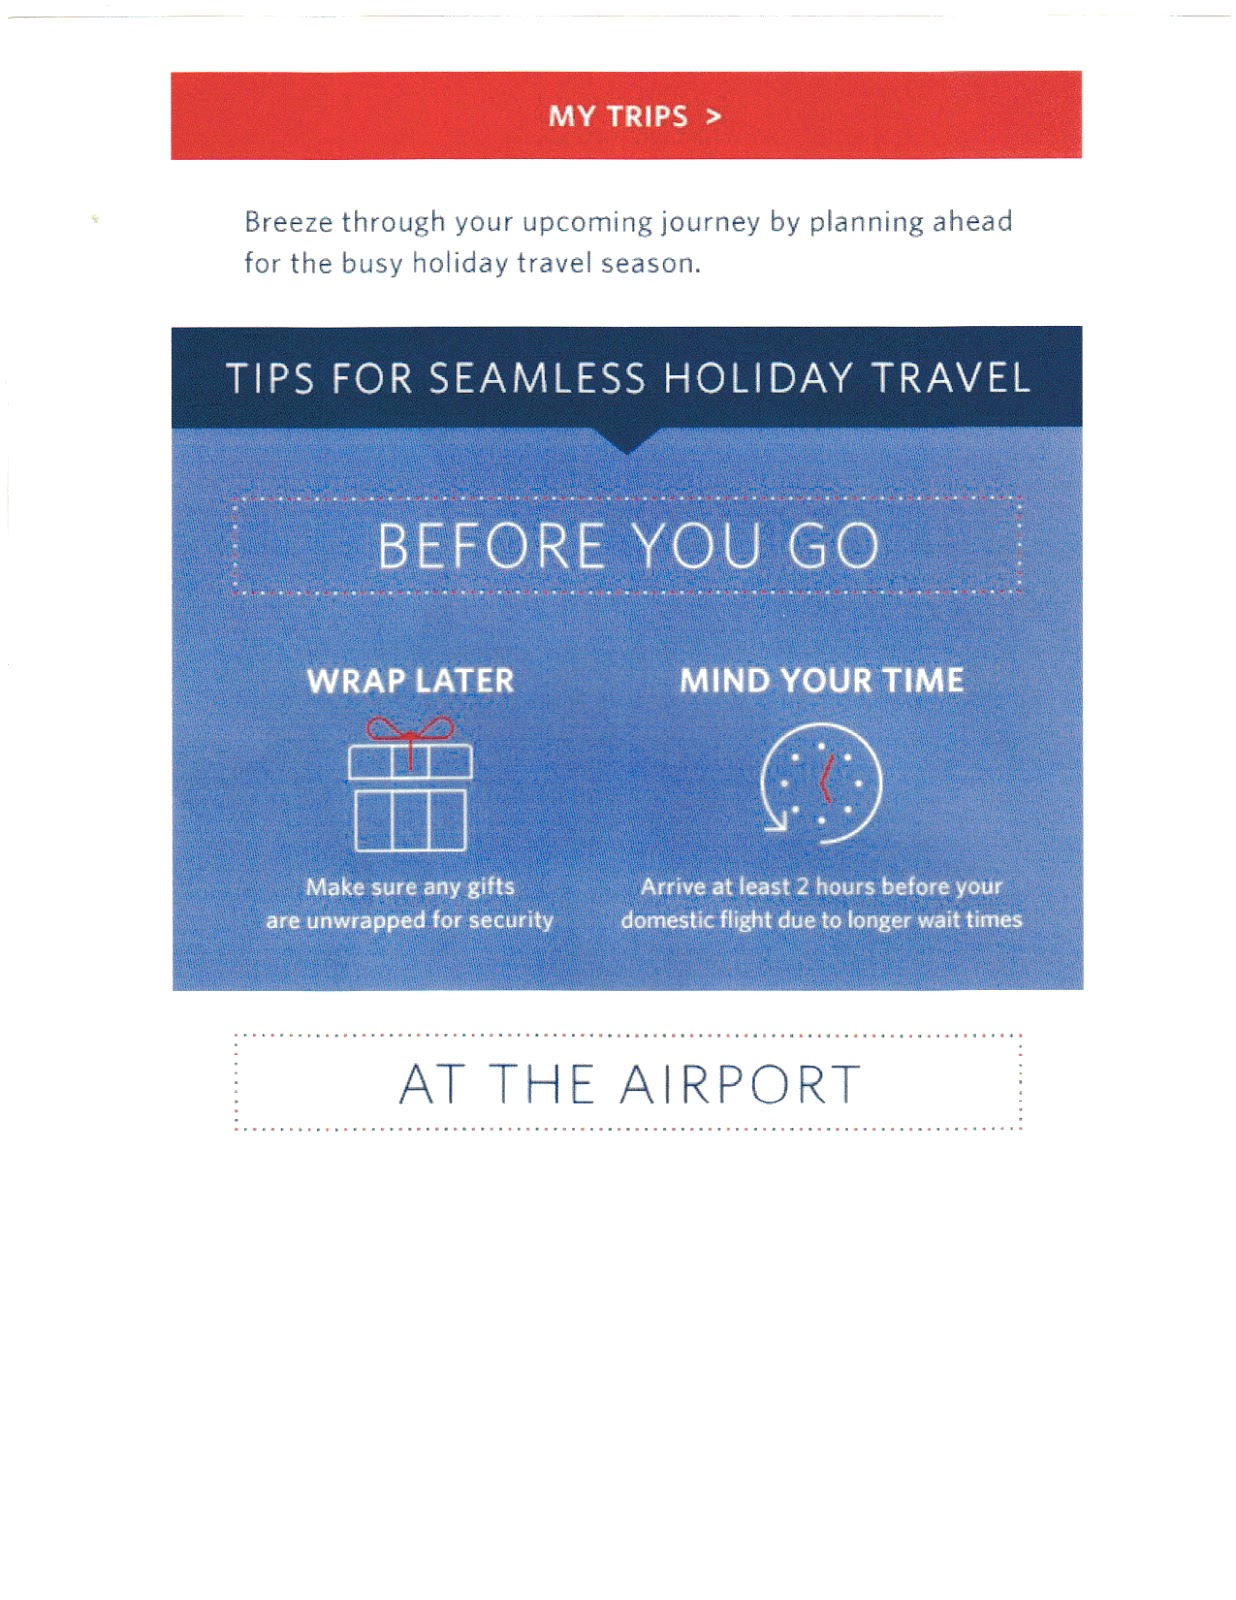 Delta Airlines: LGA, Delays, and Holidays - Mail That Fails